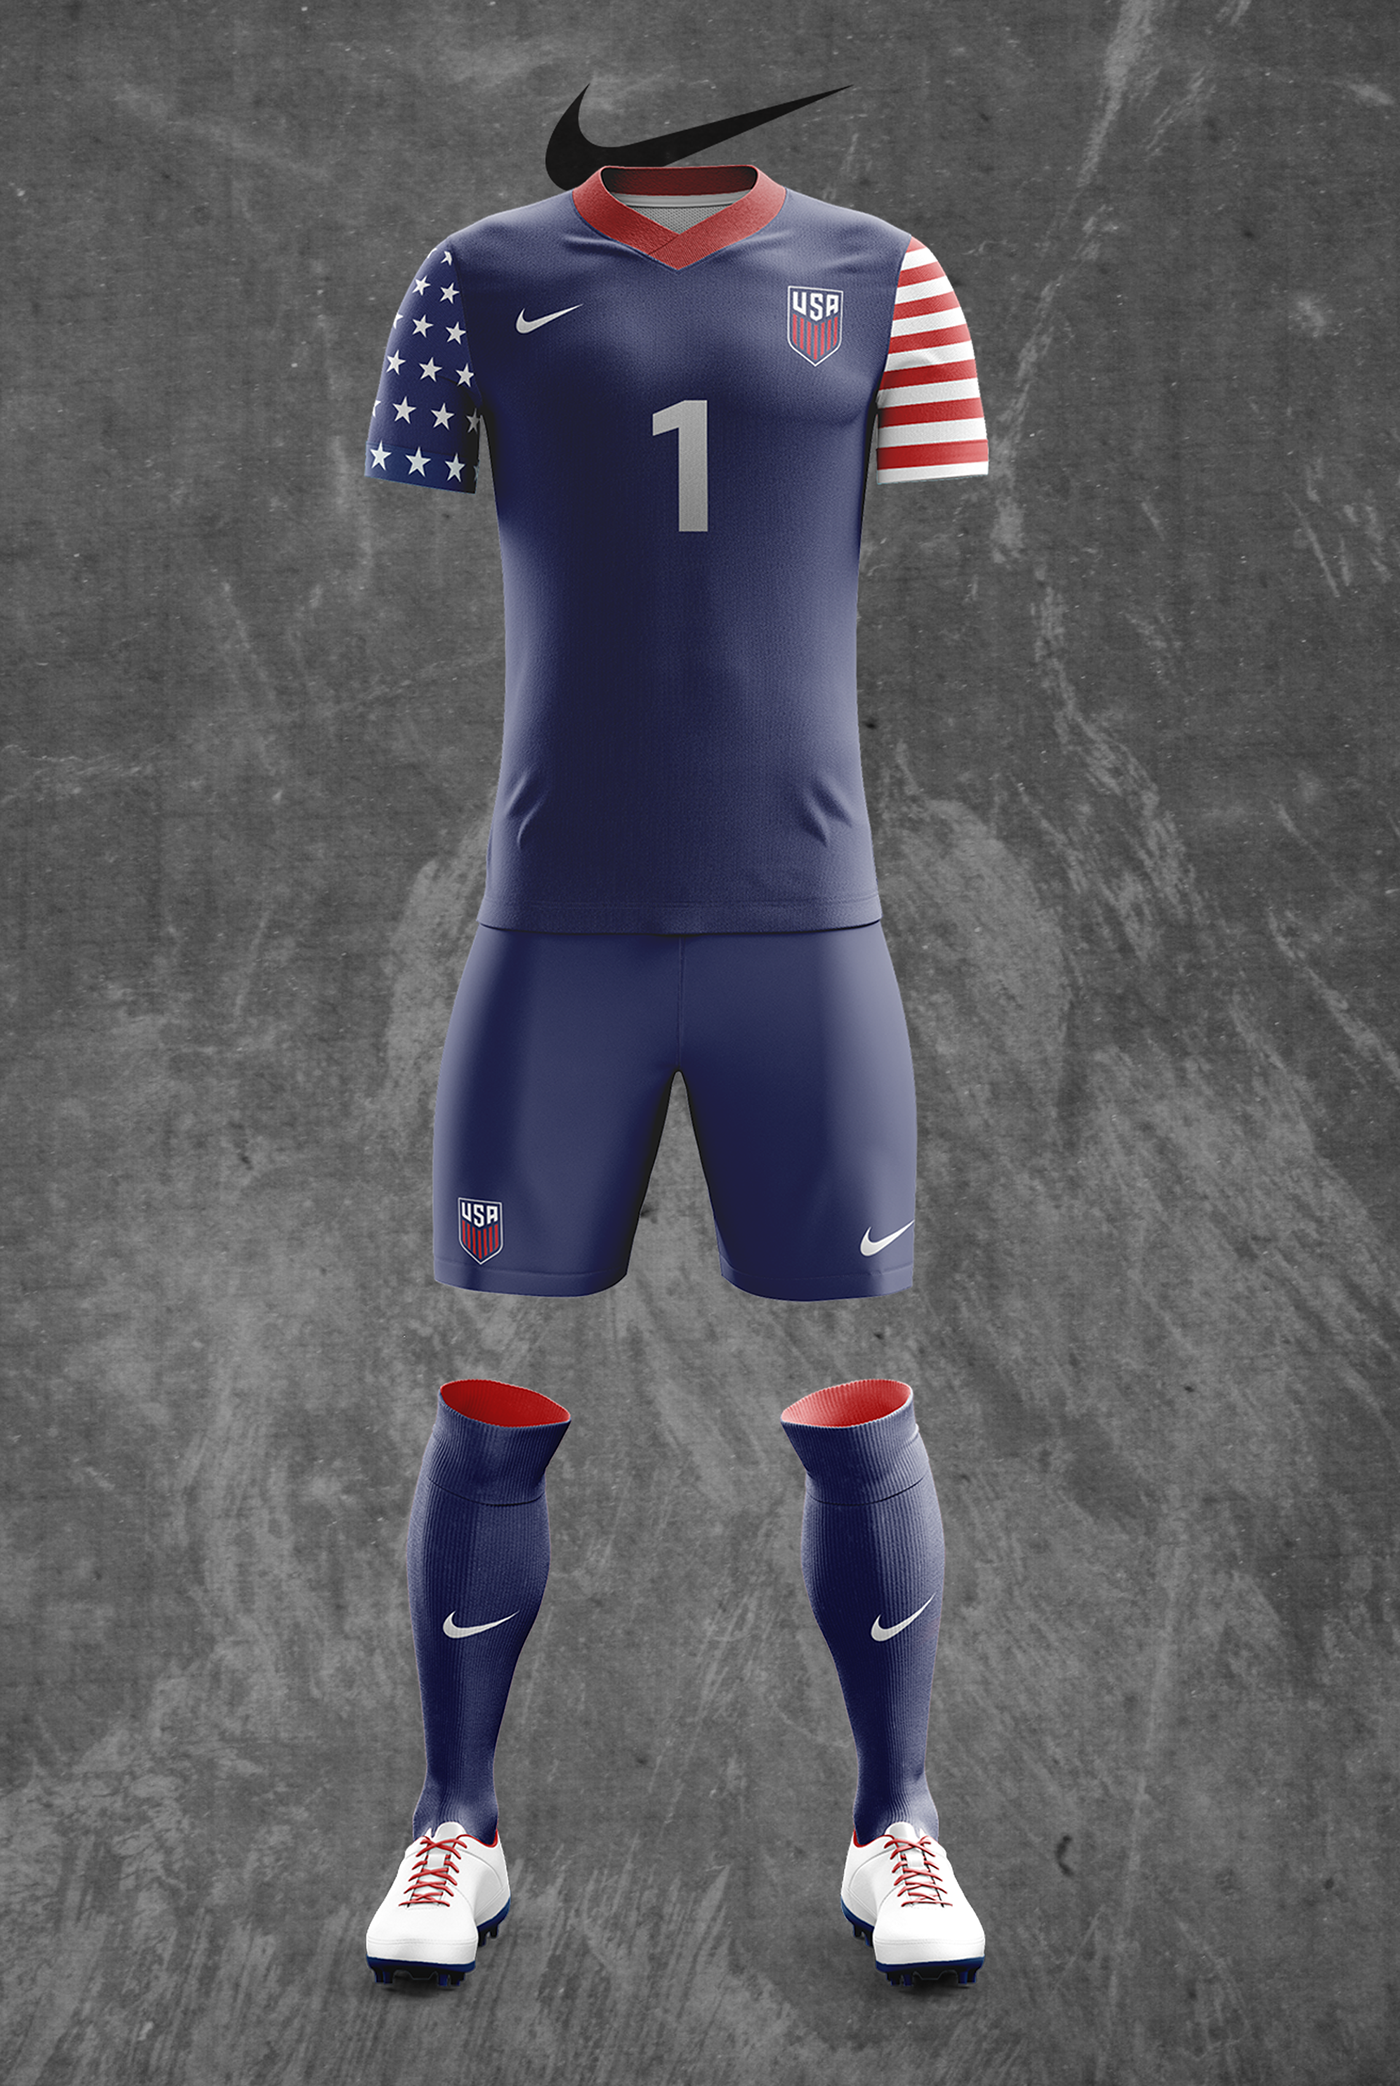 000a087619c Concept Nike soccer jerseys and kits for the US Men s National Team